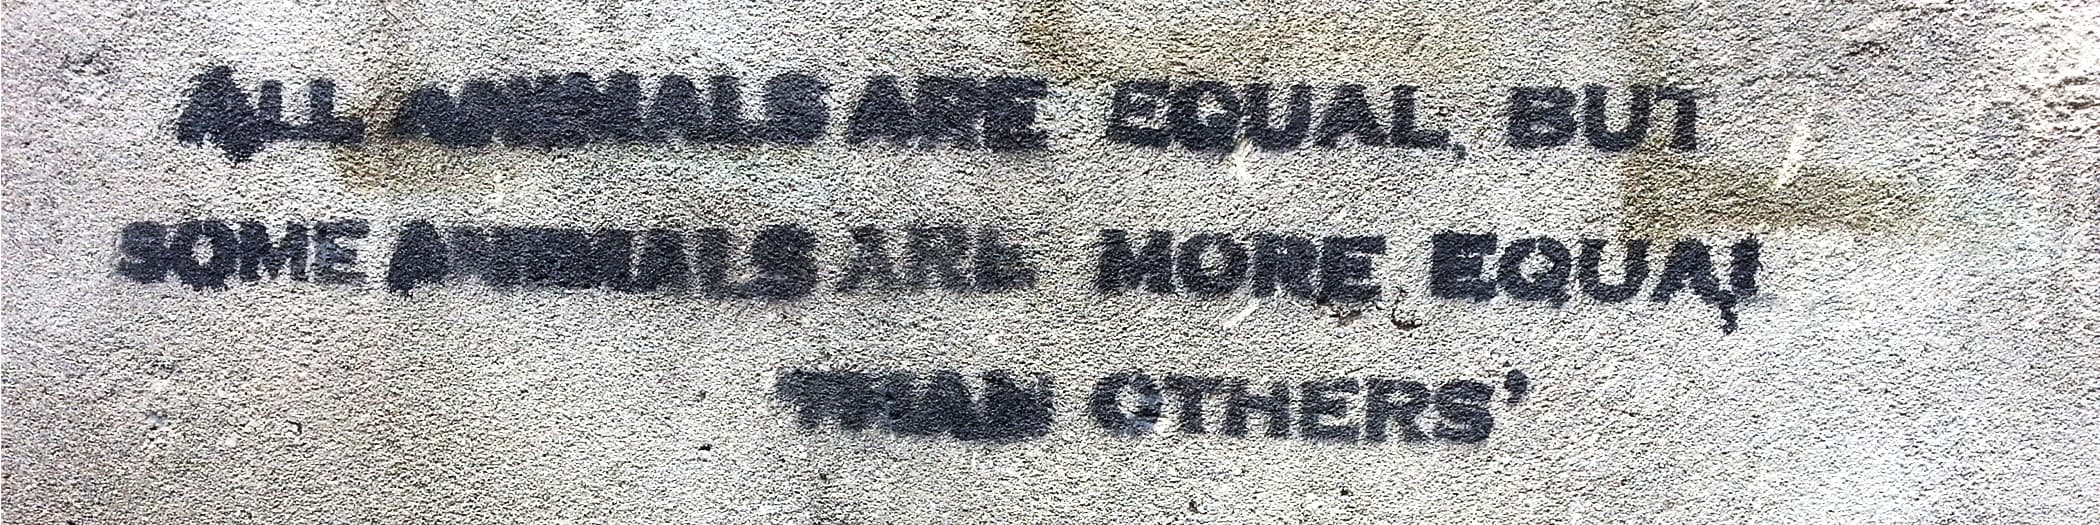 All animals are equal graffiti